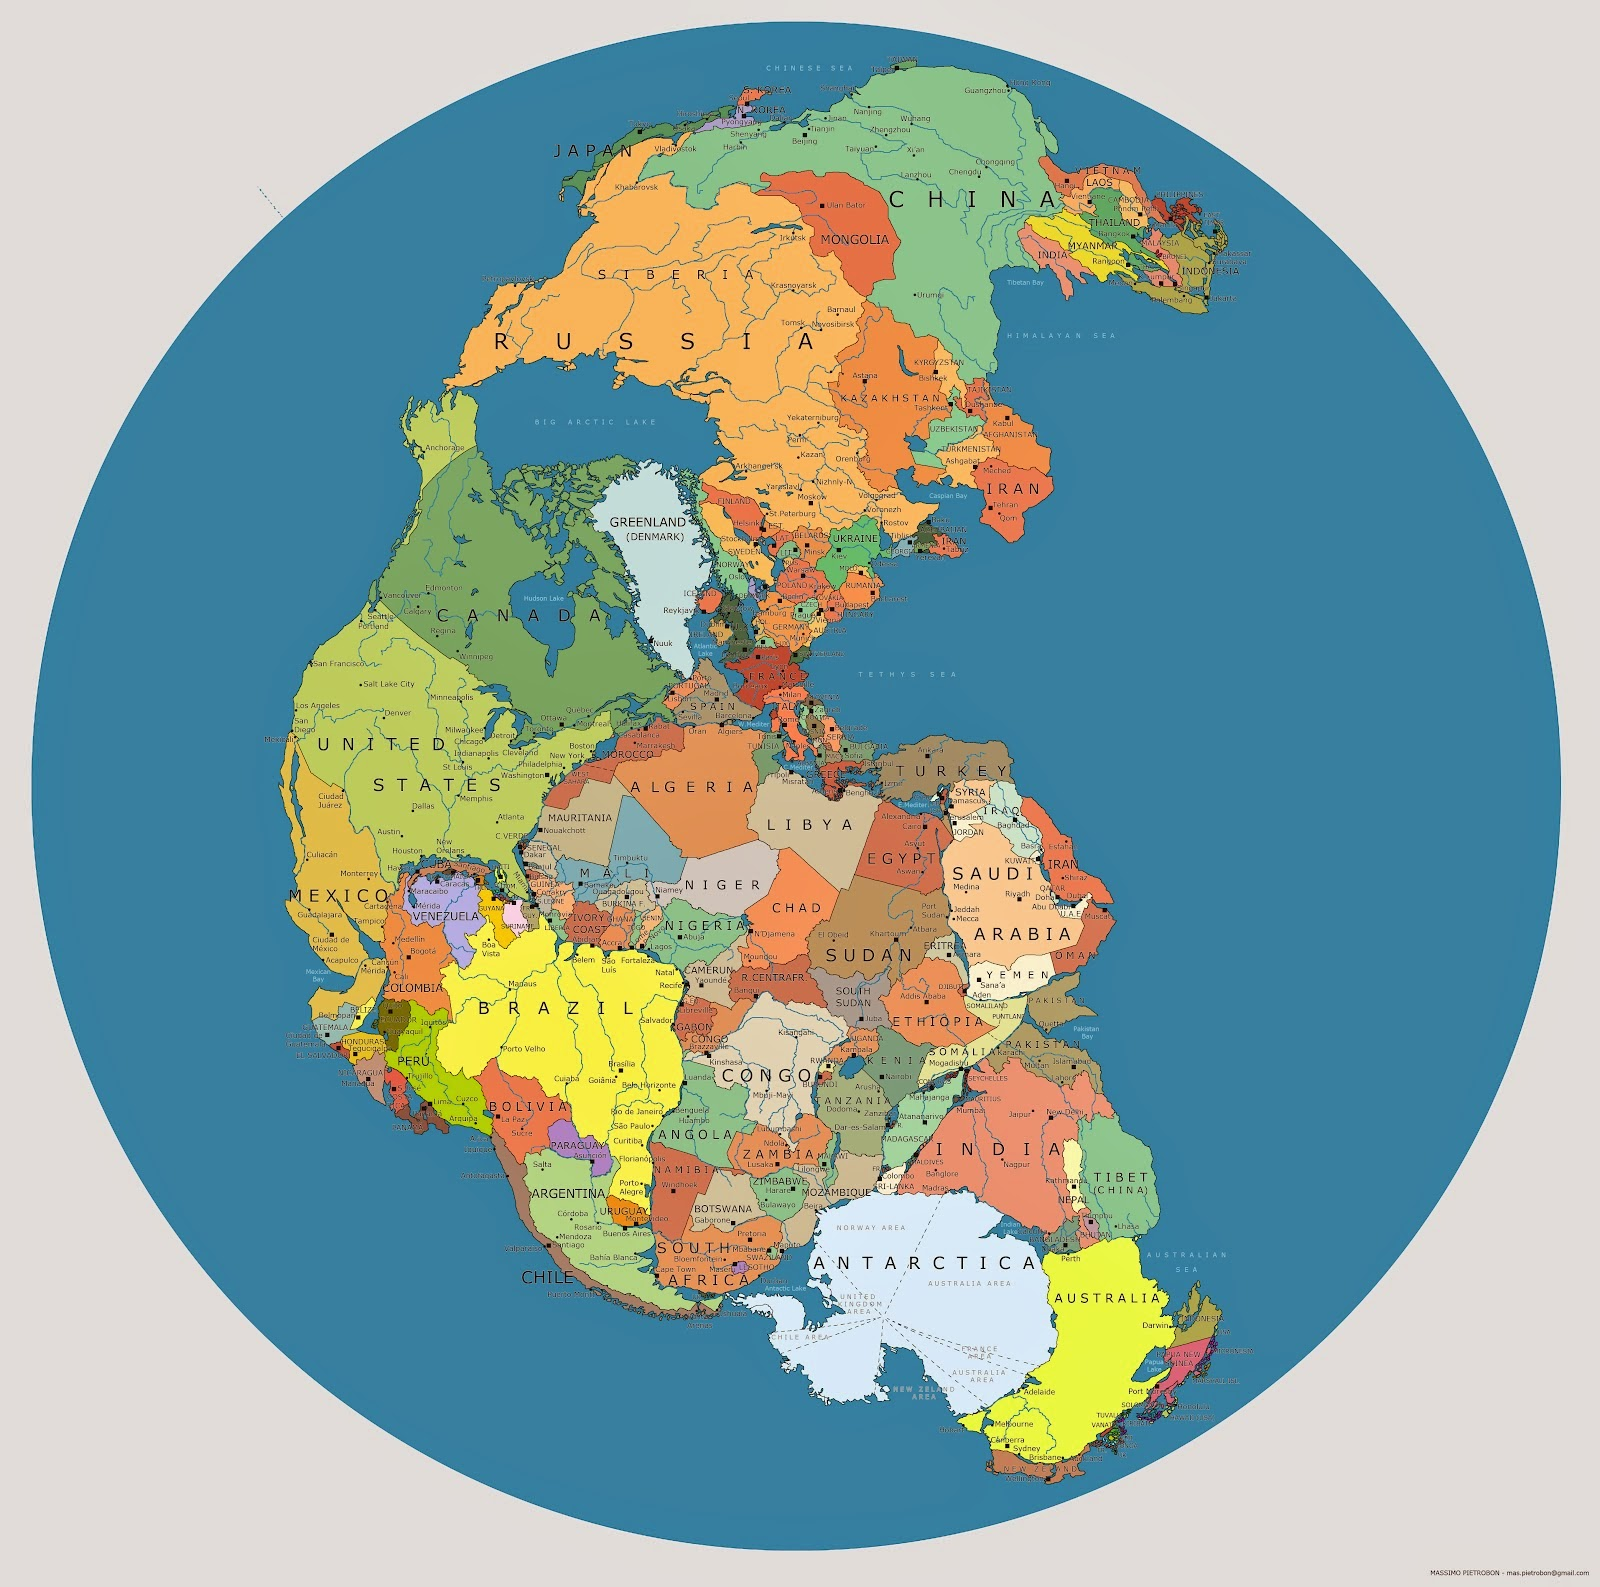 Pangea map with international borders